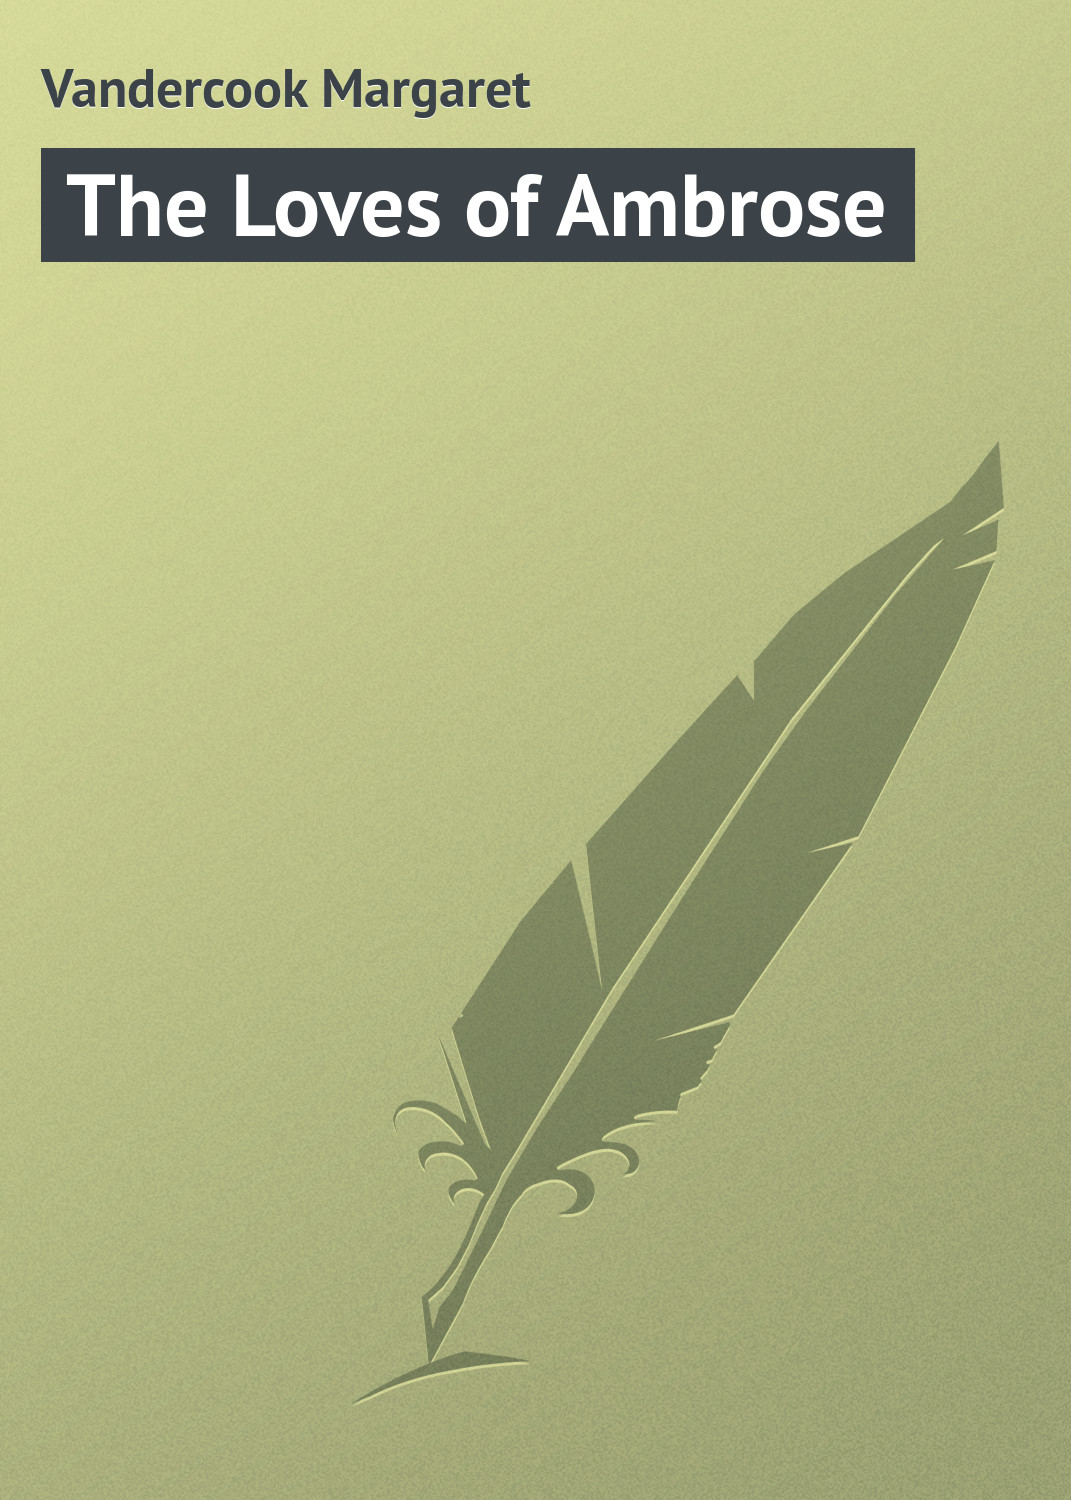 Vandercook Margaret The Loves of Ambrose ambrose g harris p the fundamentals of creative design